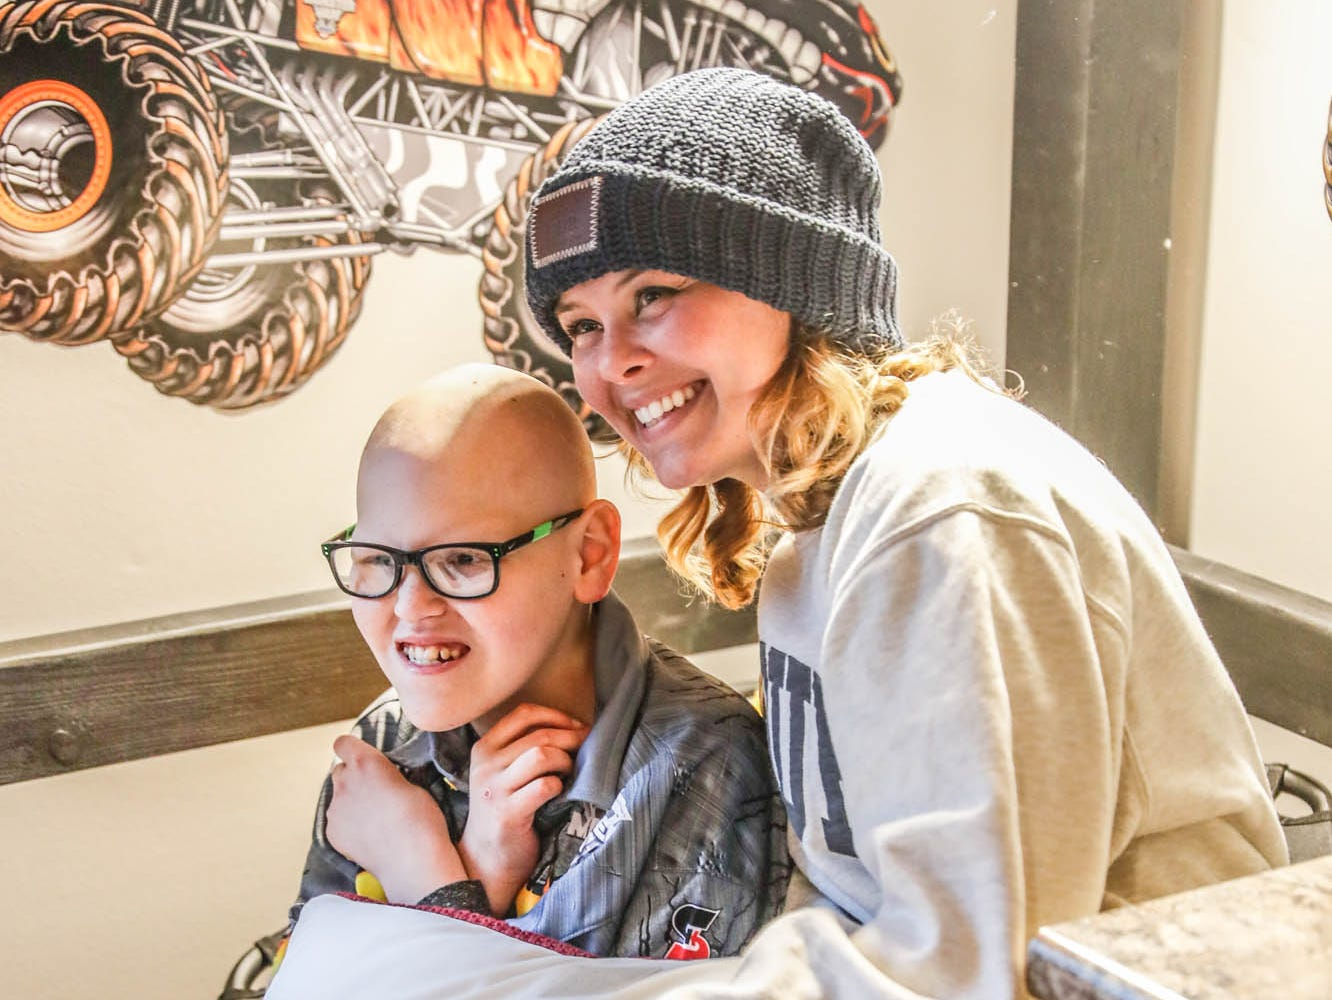 Volunteer Megan OÕDonnell, crew president for the Purdue Love Your Mellon group, poses for a photo with James Egold, who just completed chemo therapy, in his newly remodeled Monster Jam themed bedroom on Thursday, Feb. 7, 2019. The remodel was thanks to a team up by Monster Jam, Love Your Melon, and Home Depot.